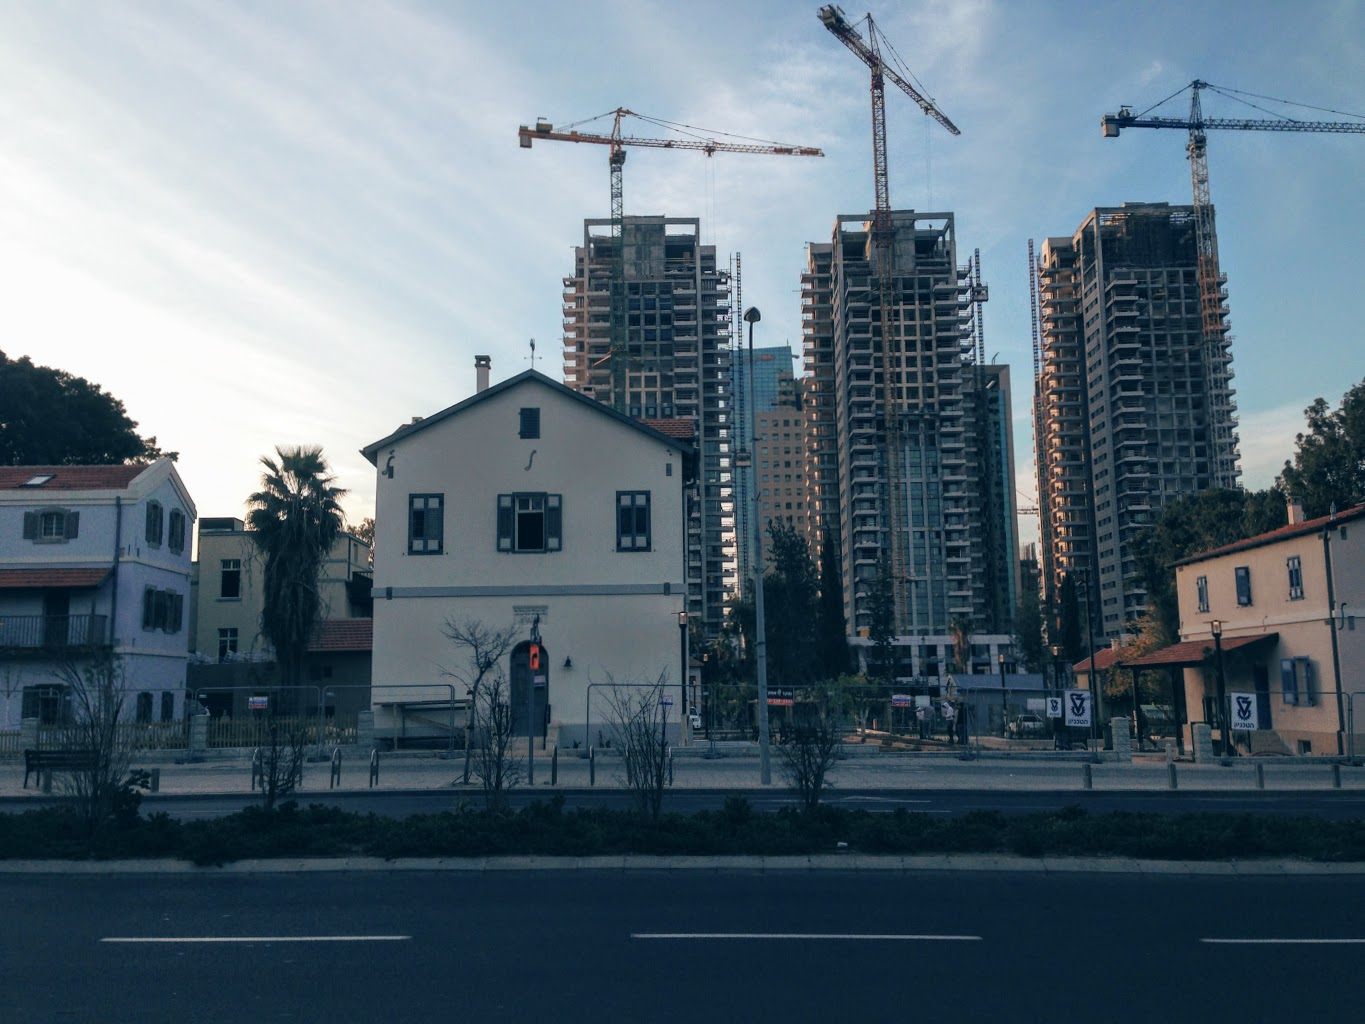 Constant redevelopment of real estate in the city centre